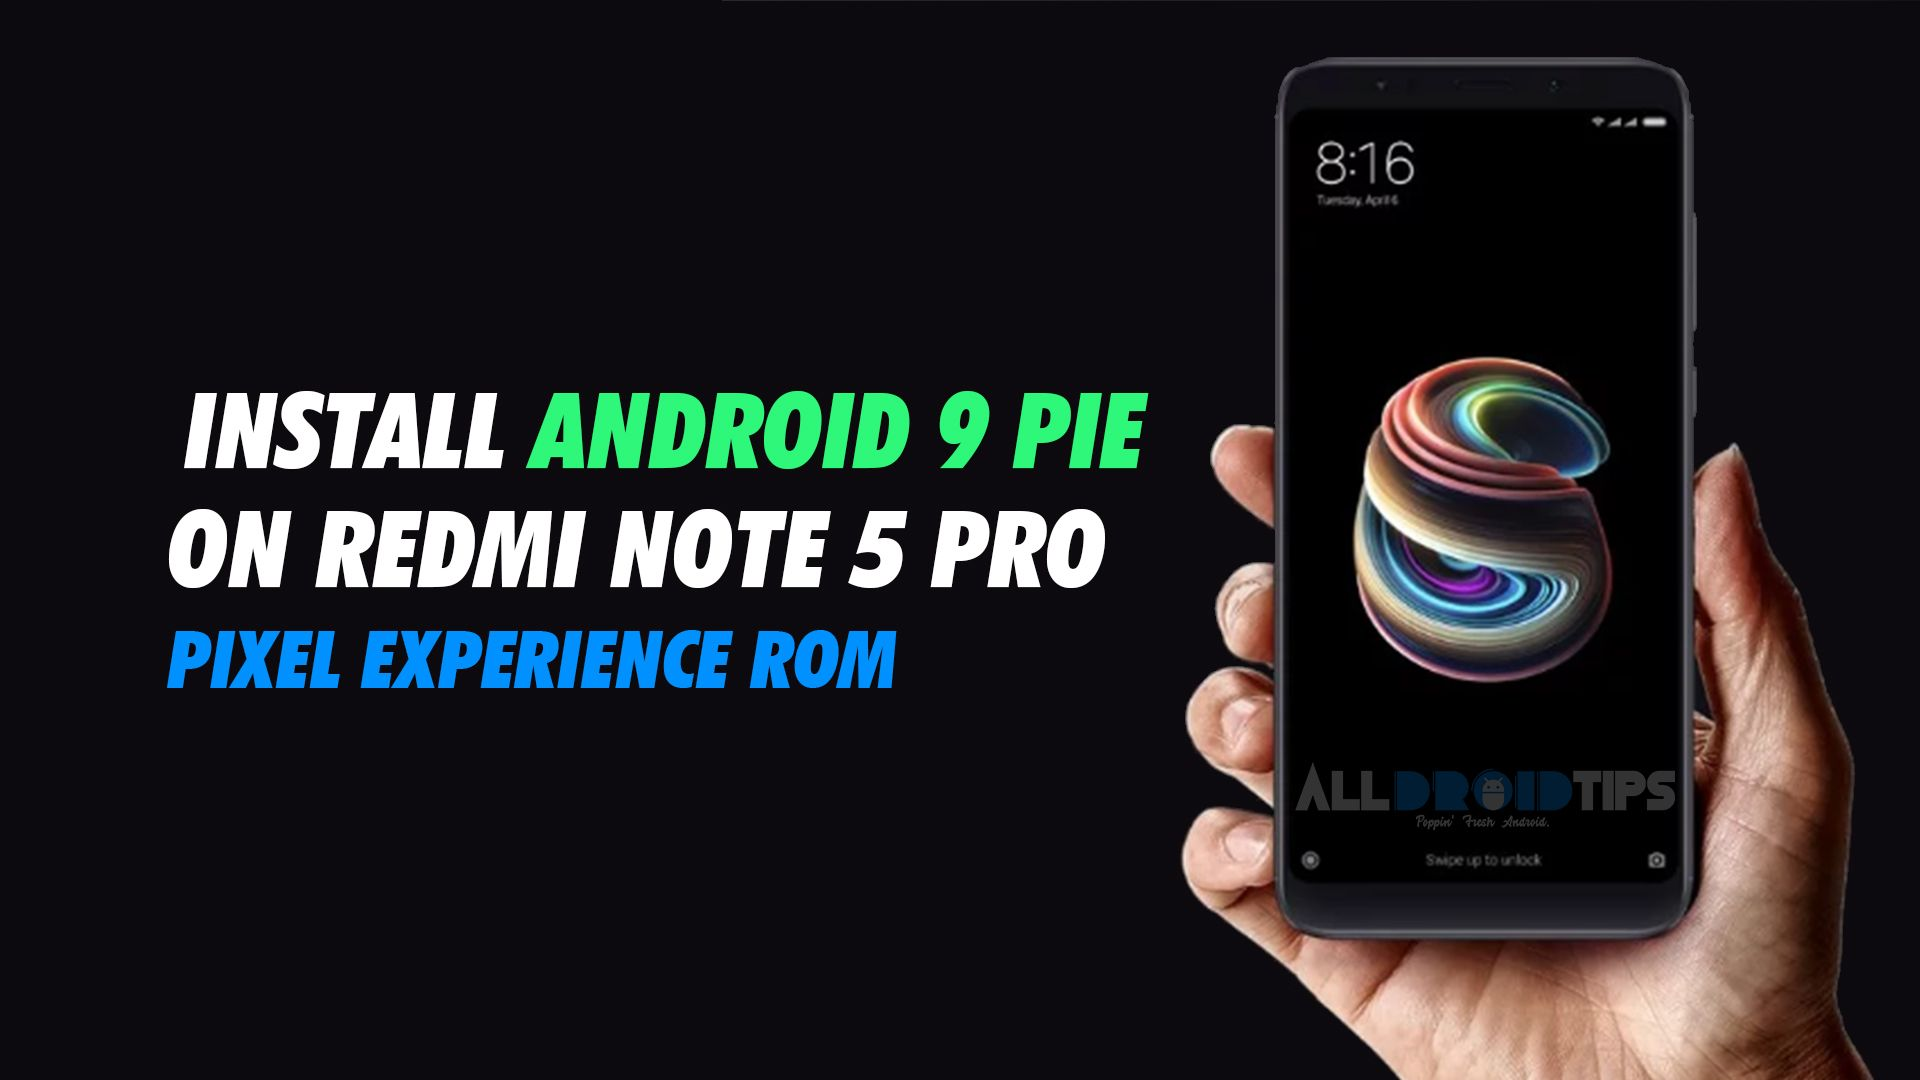 Download Pixel Experience ROM on Xiaomi Redmi Note 5 Pro